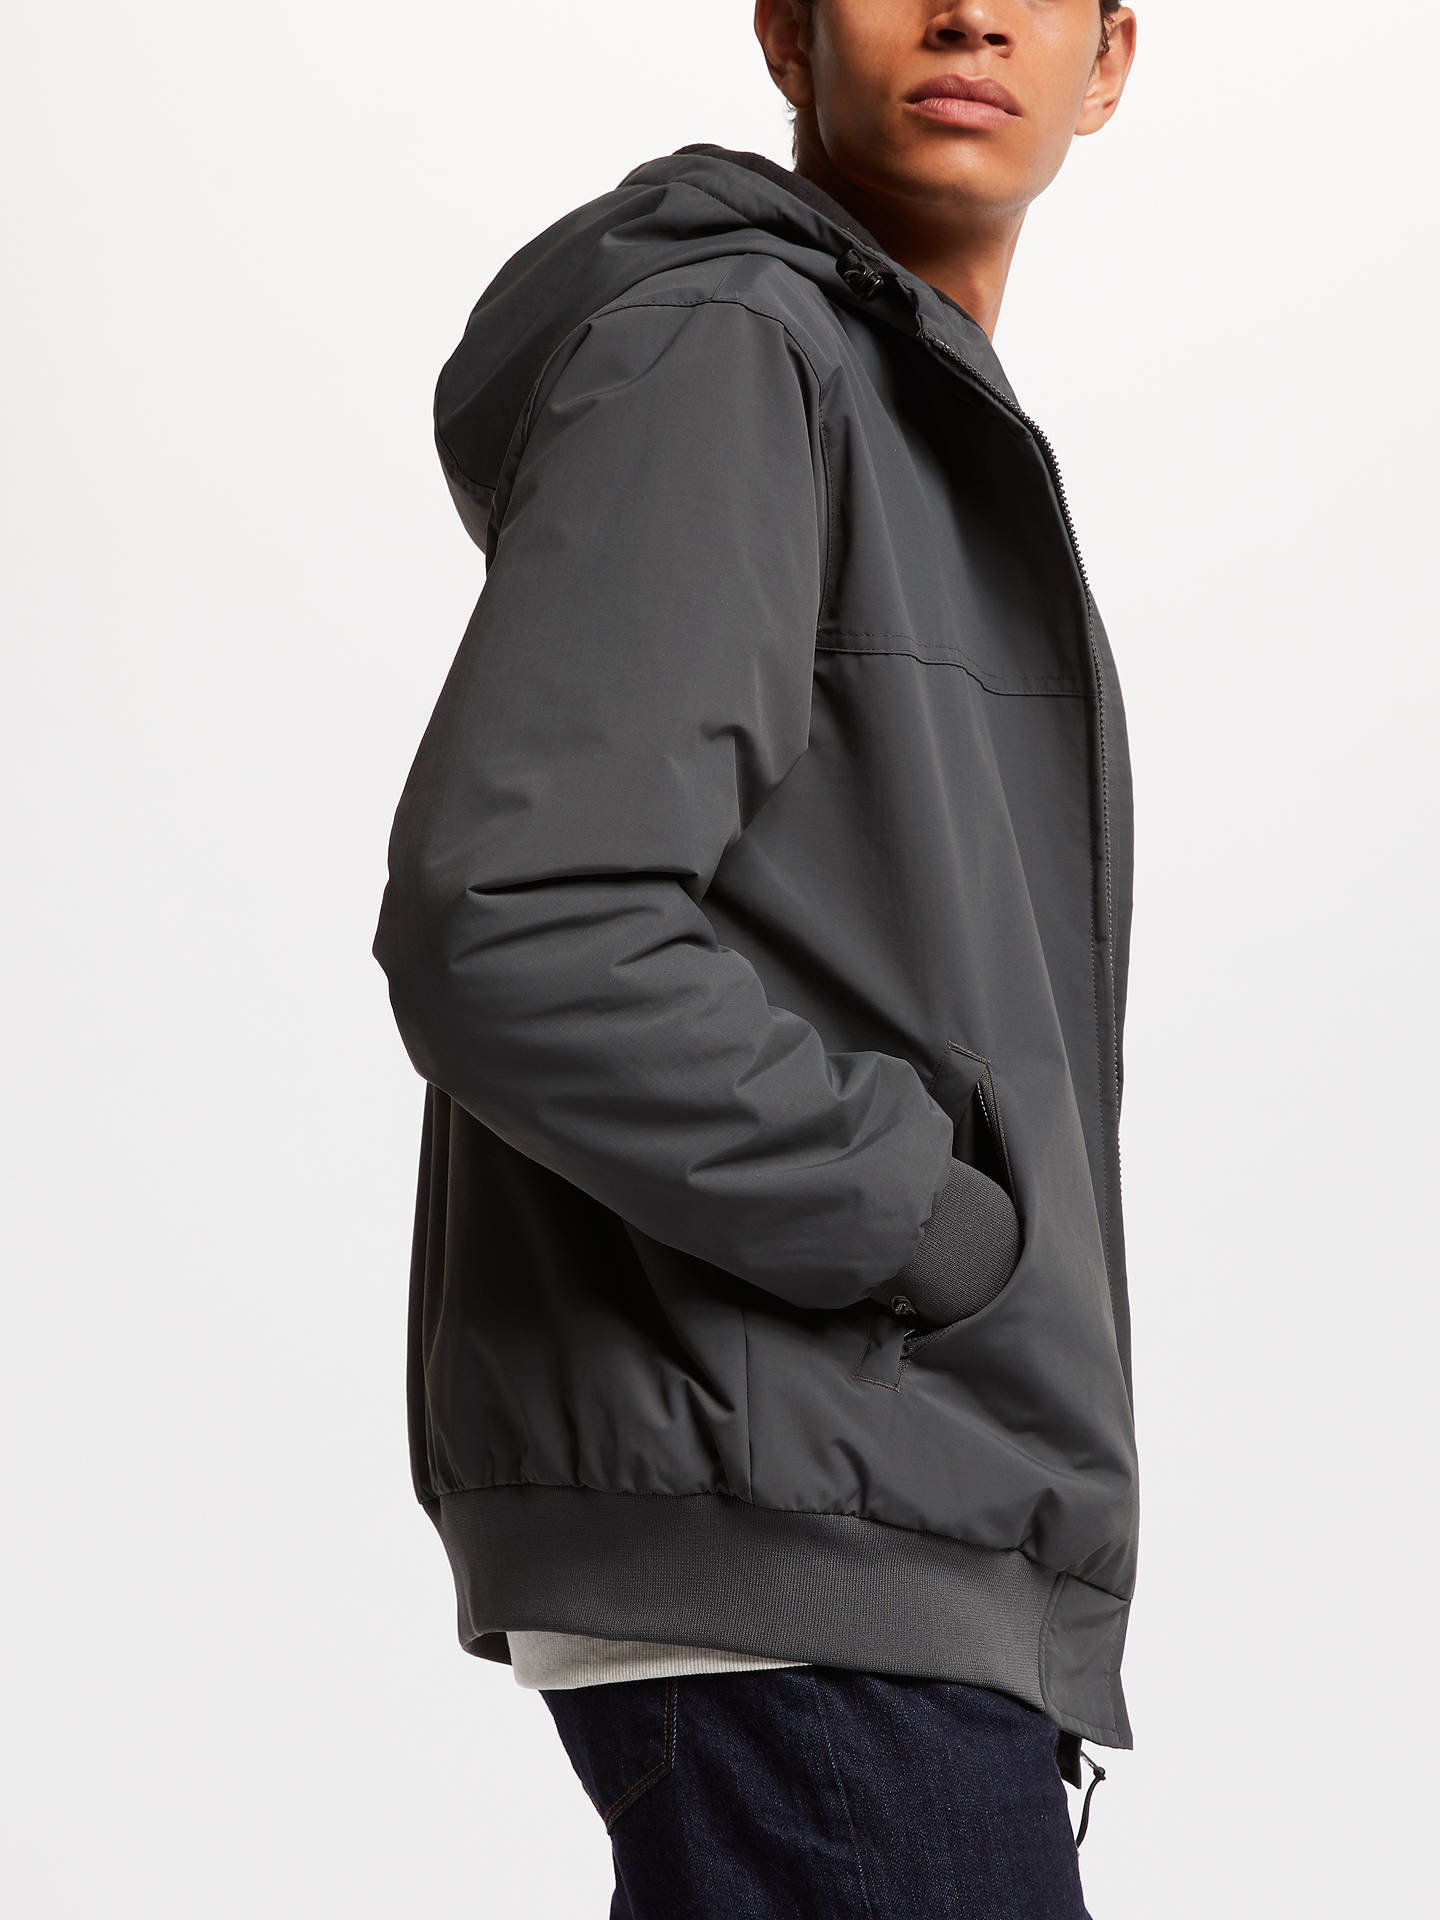 BuyCarhartt WIP Sail Fleece Lined Hooded Jacket, Blacksmith, XL Online at johnlewis.com